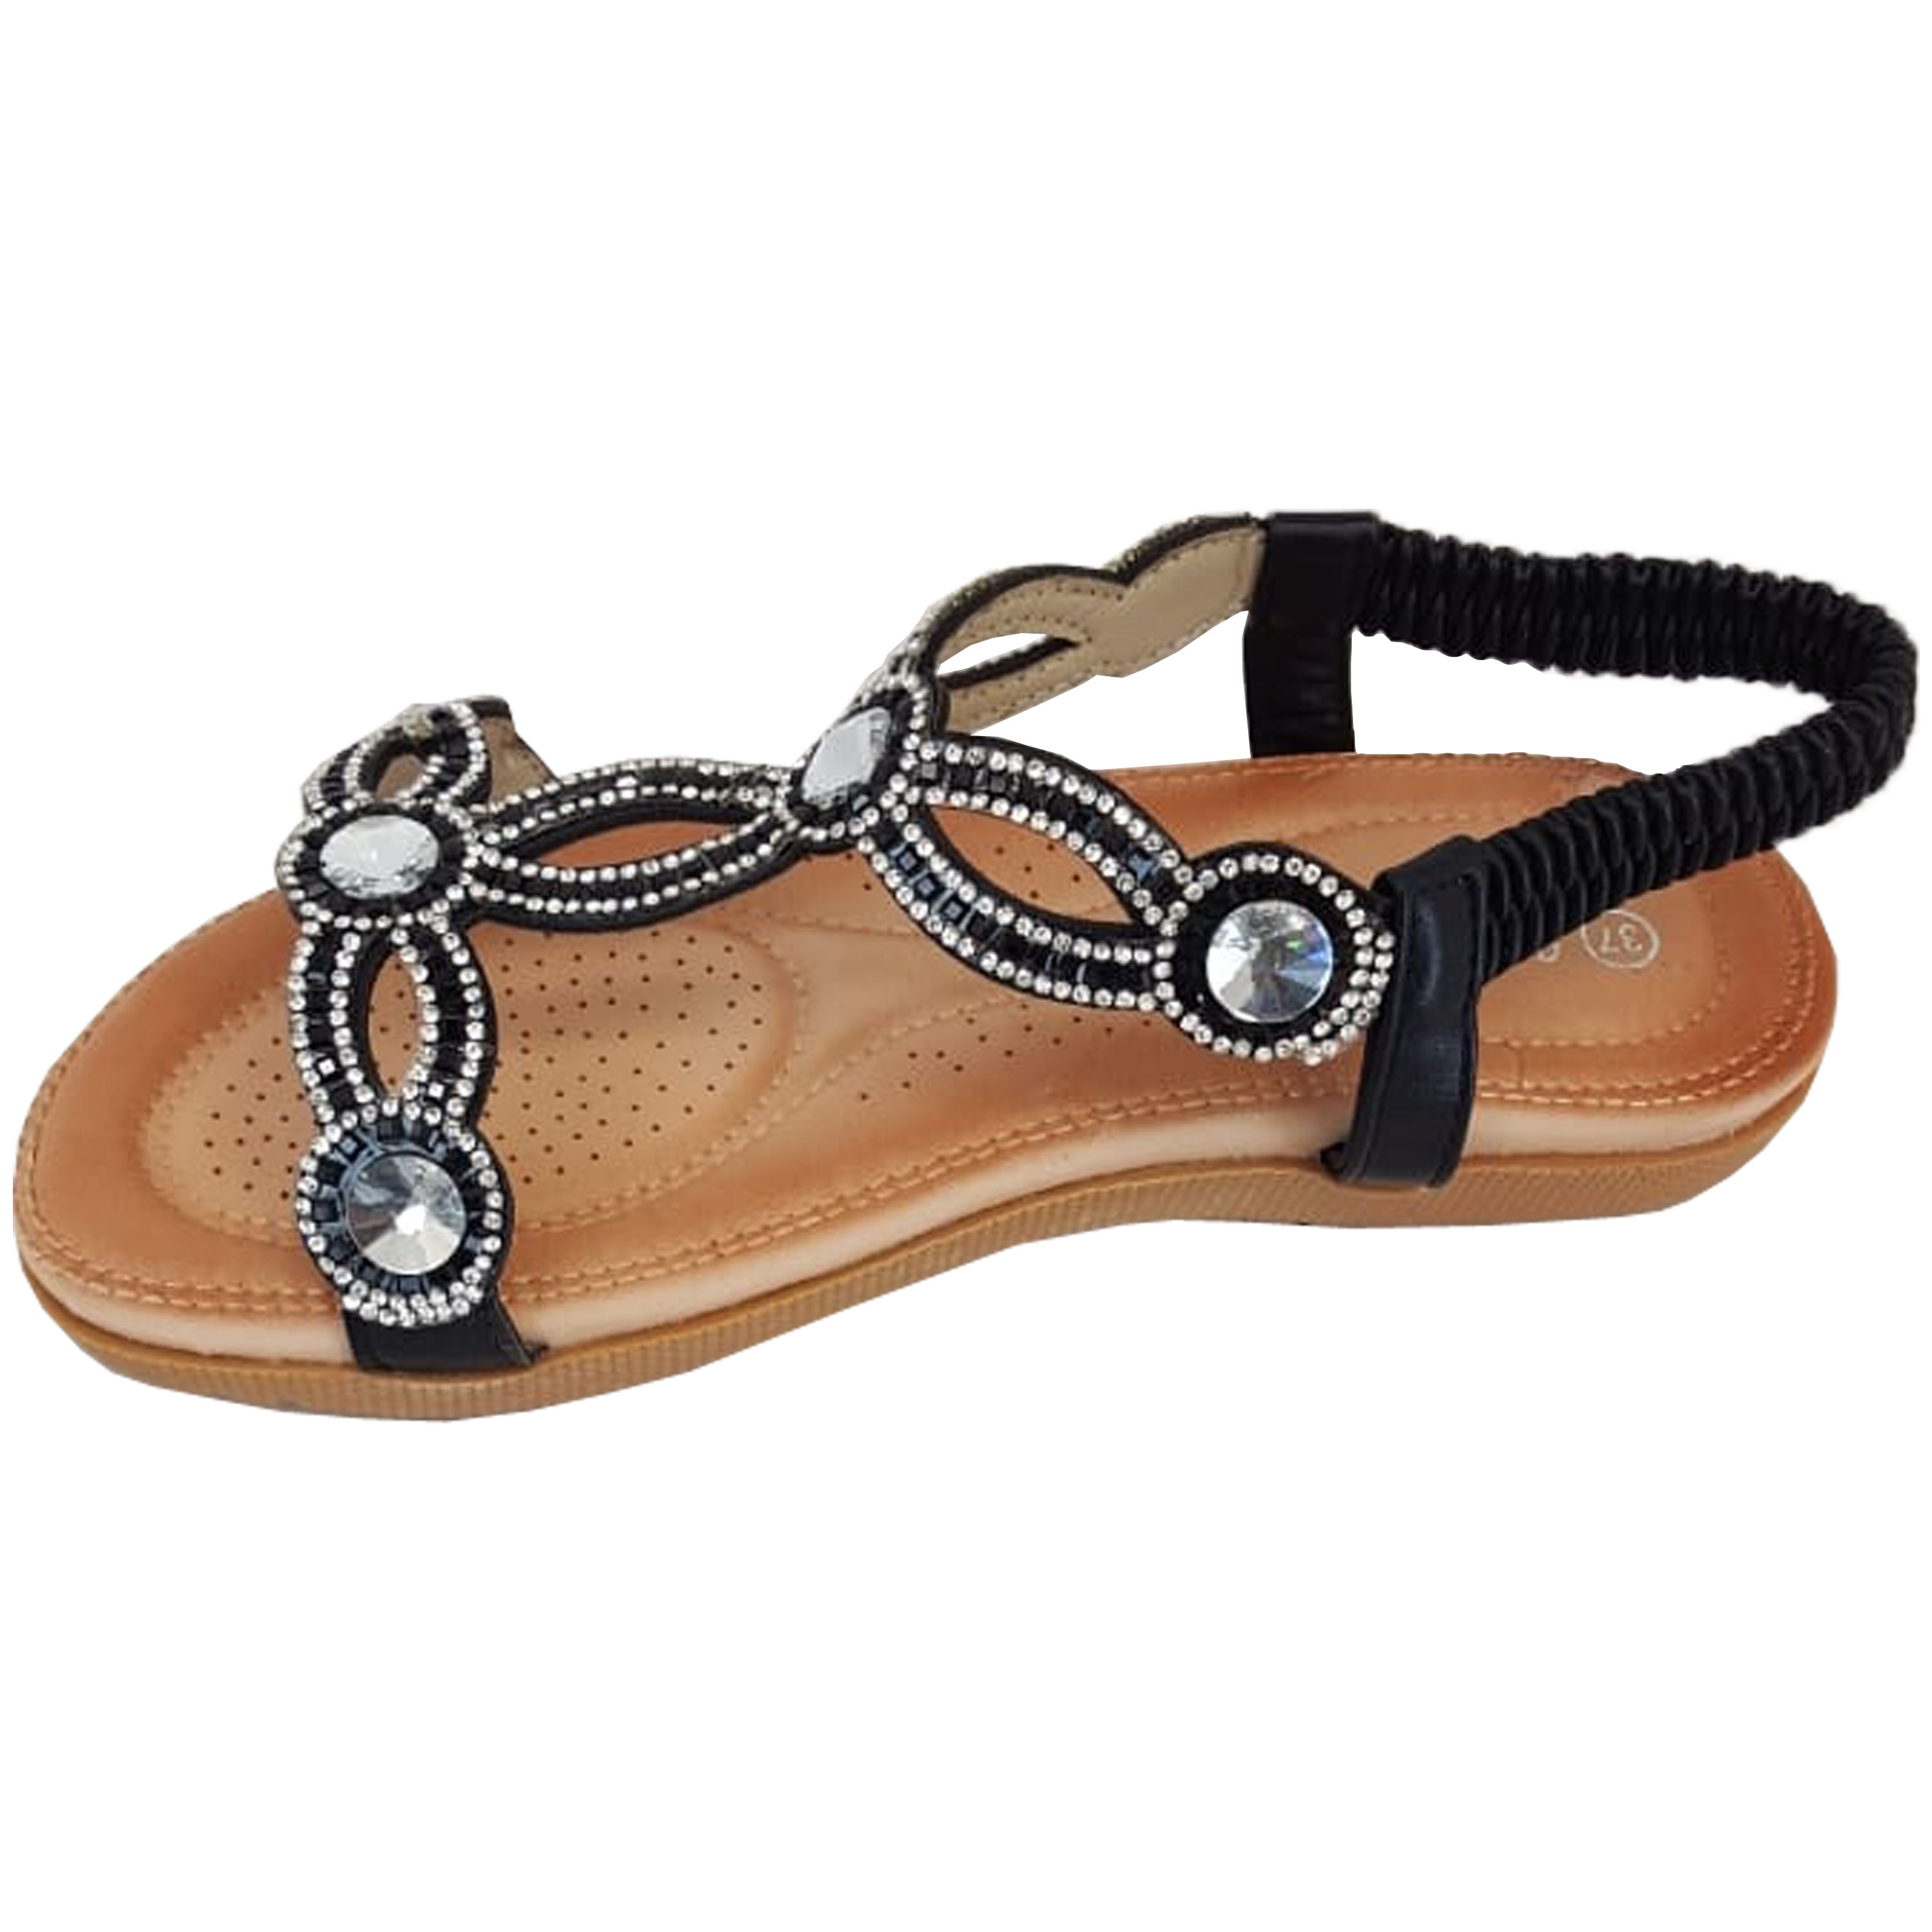 Ladies-Sandals-Womens-Diamante-Sling-Back-Open-Toe-Post-Shoes-Fashion-Summer-New thumbnail 6